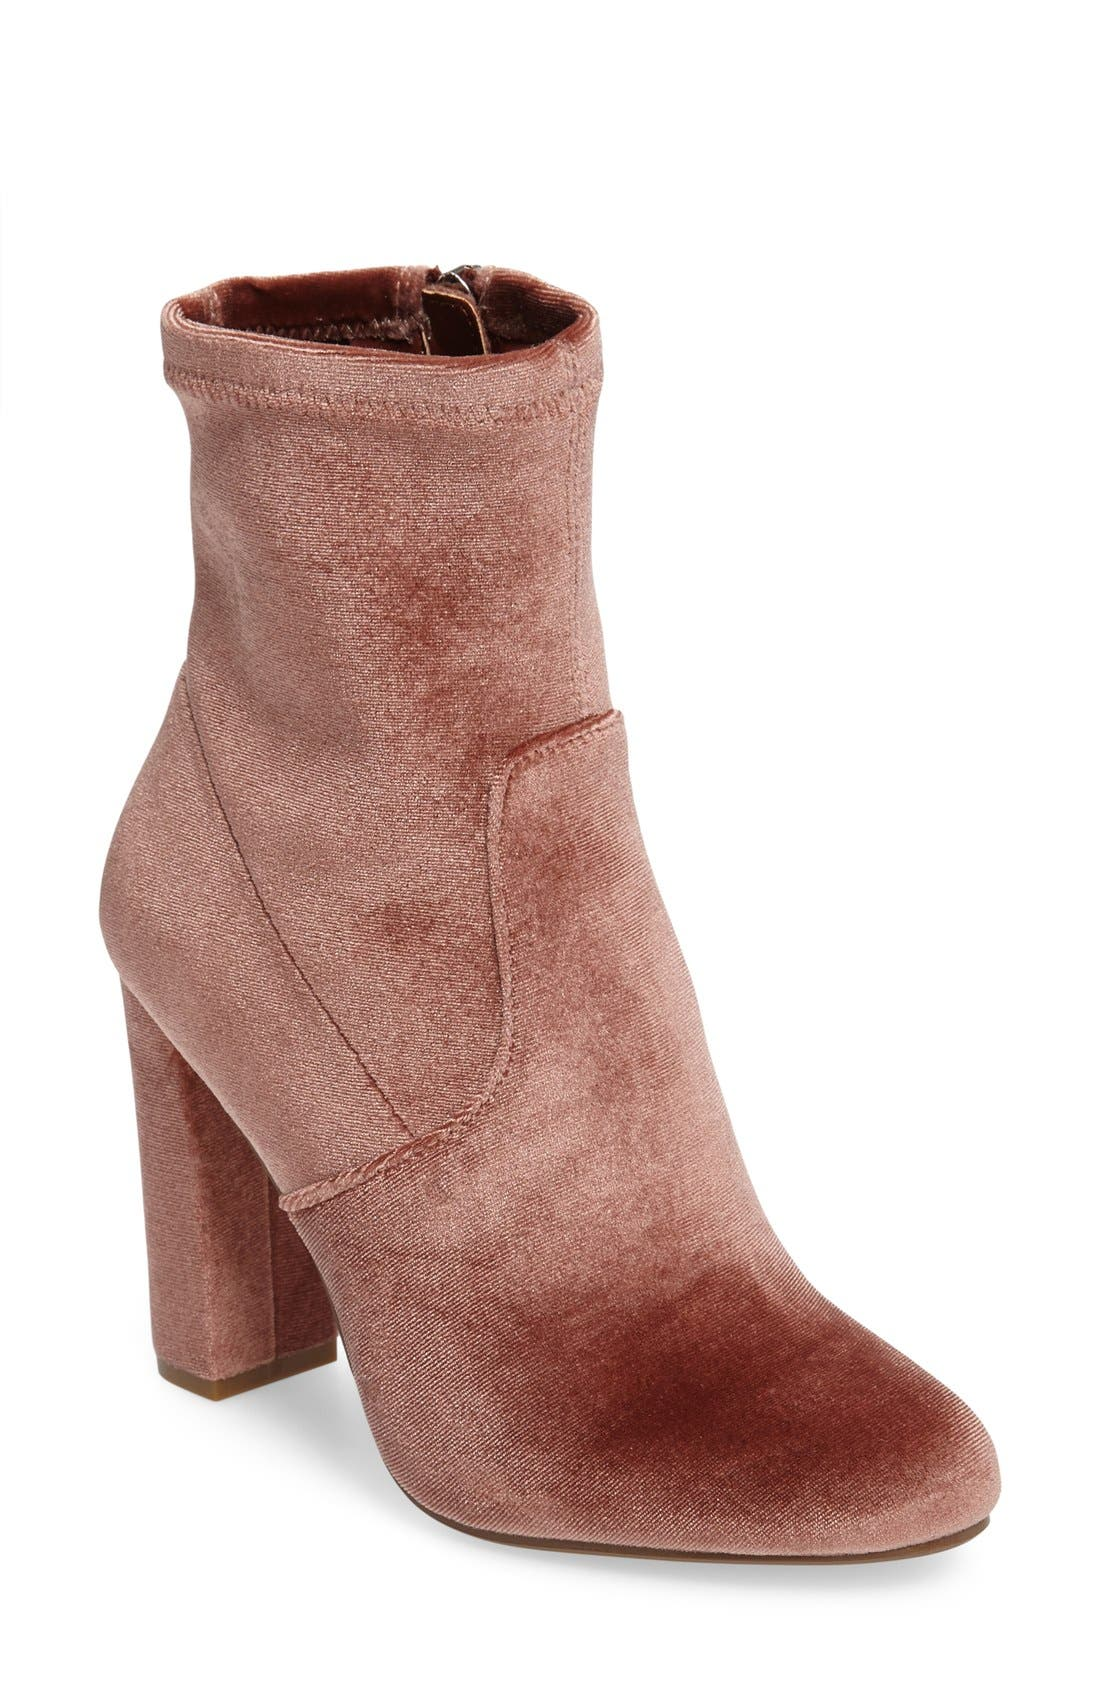 Alternate Image 1 Selected - Steve Madden Edit Bootie (Women)